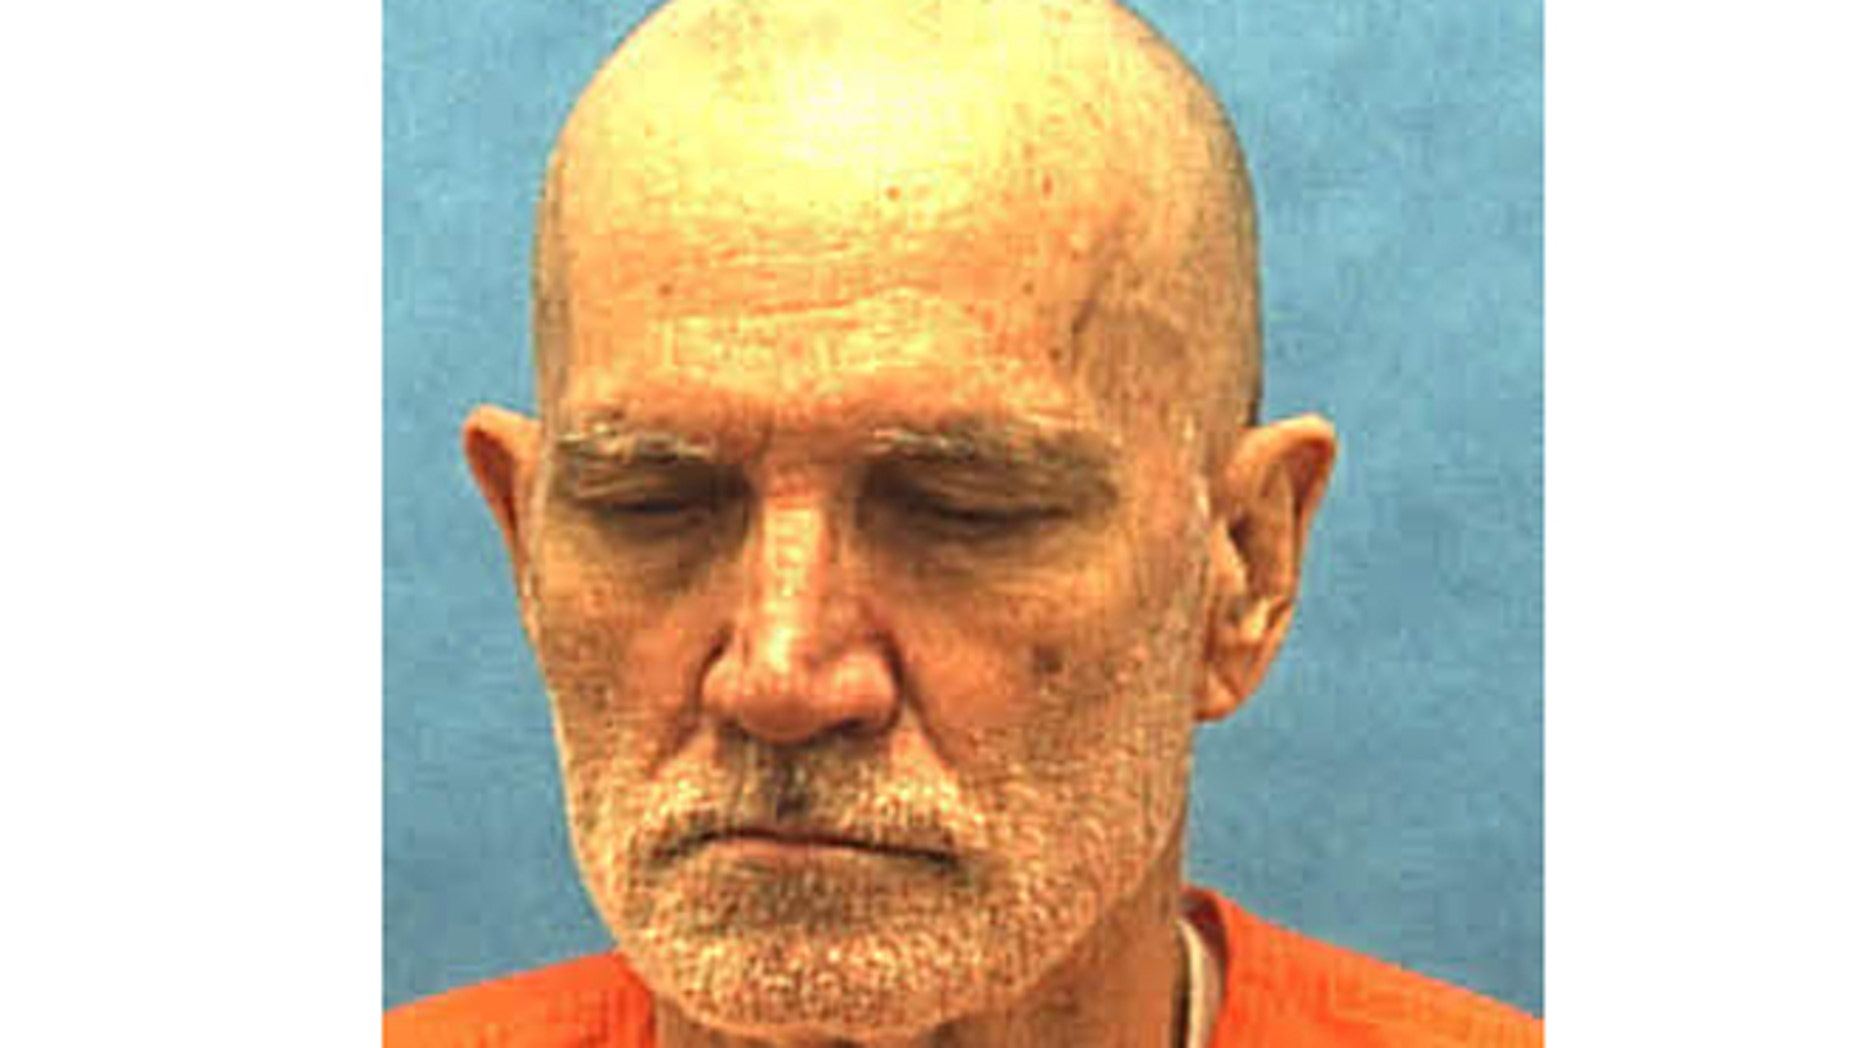 James Franklin Rose is on death row in Florida. (Florida Department of Corrections)